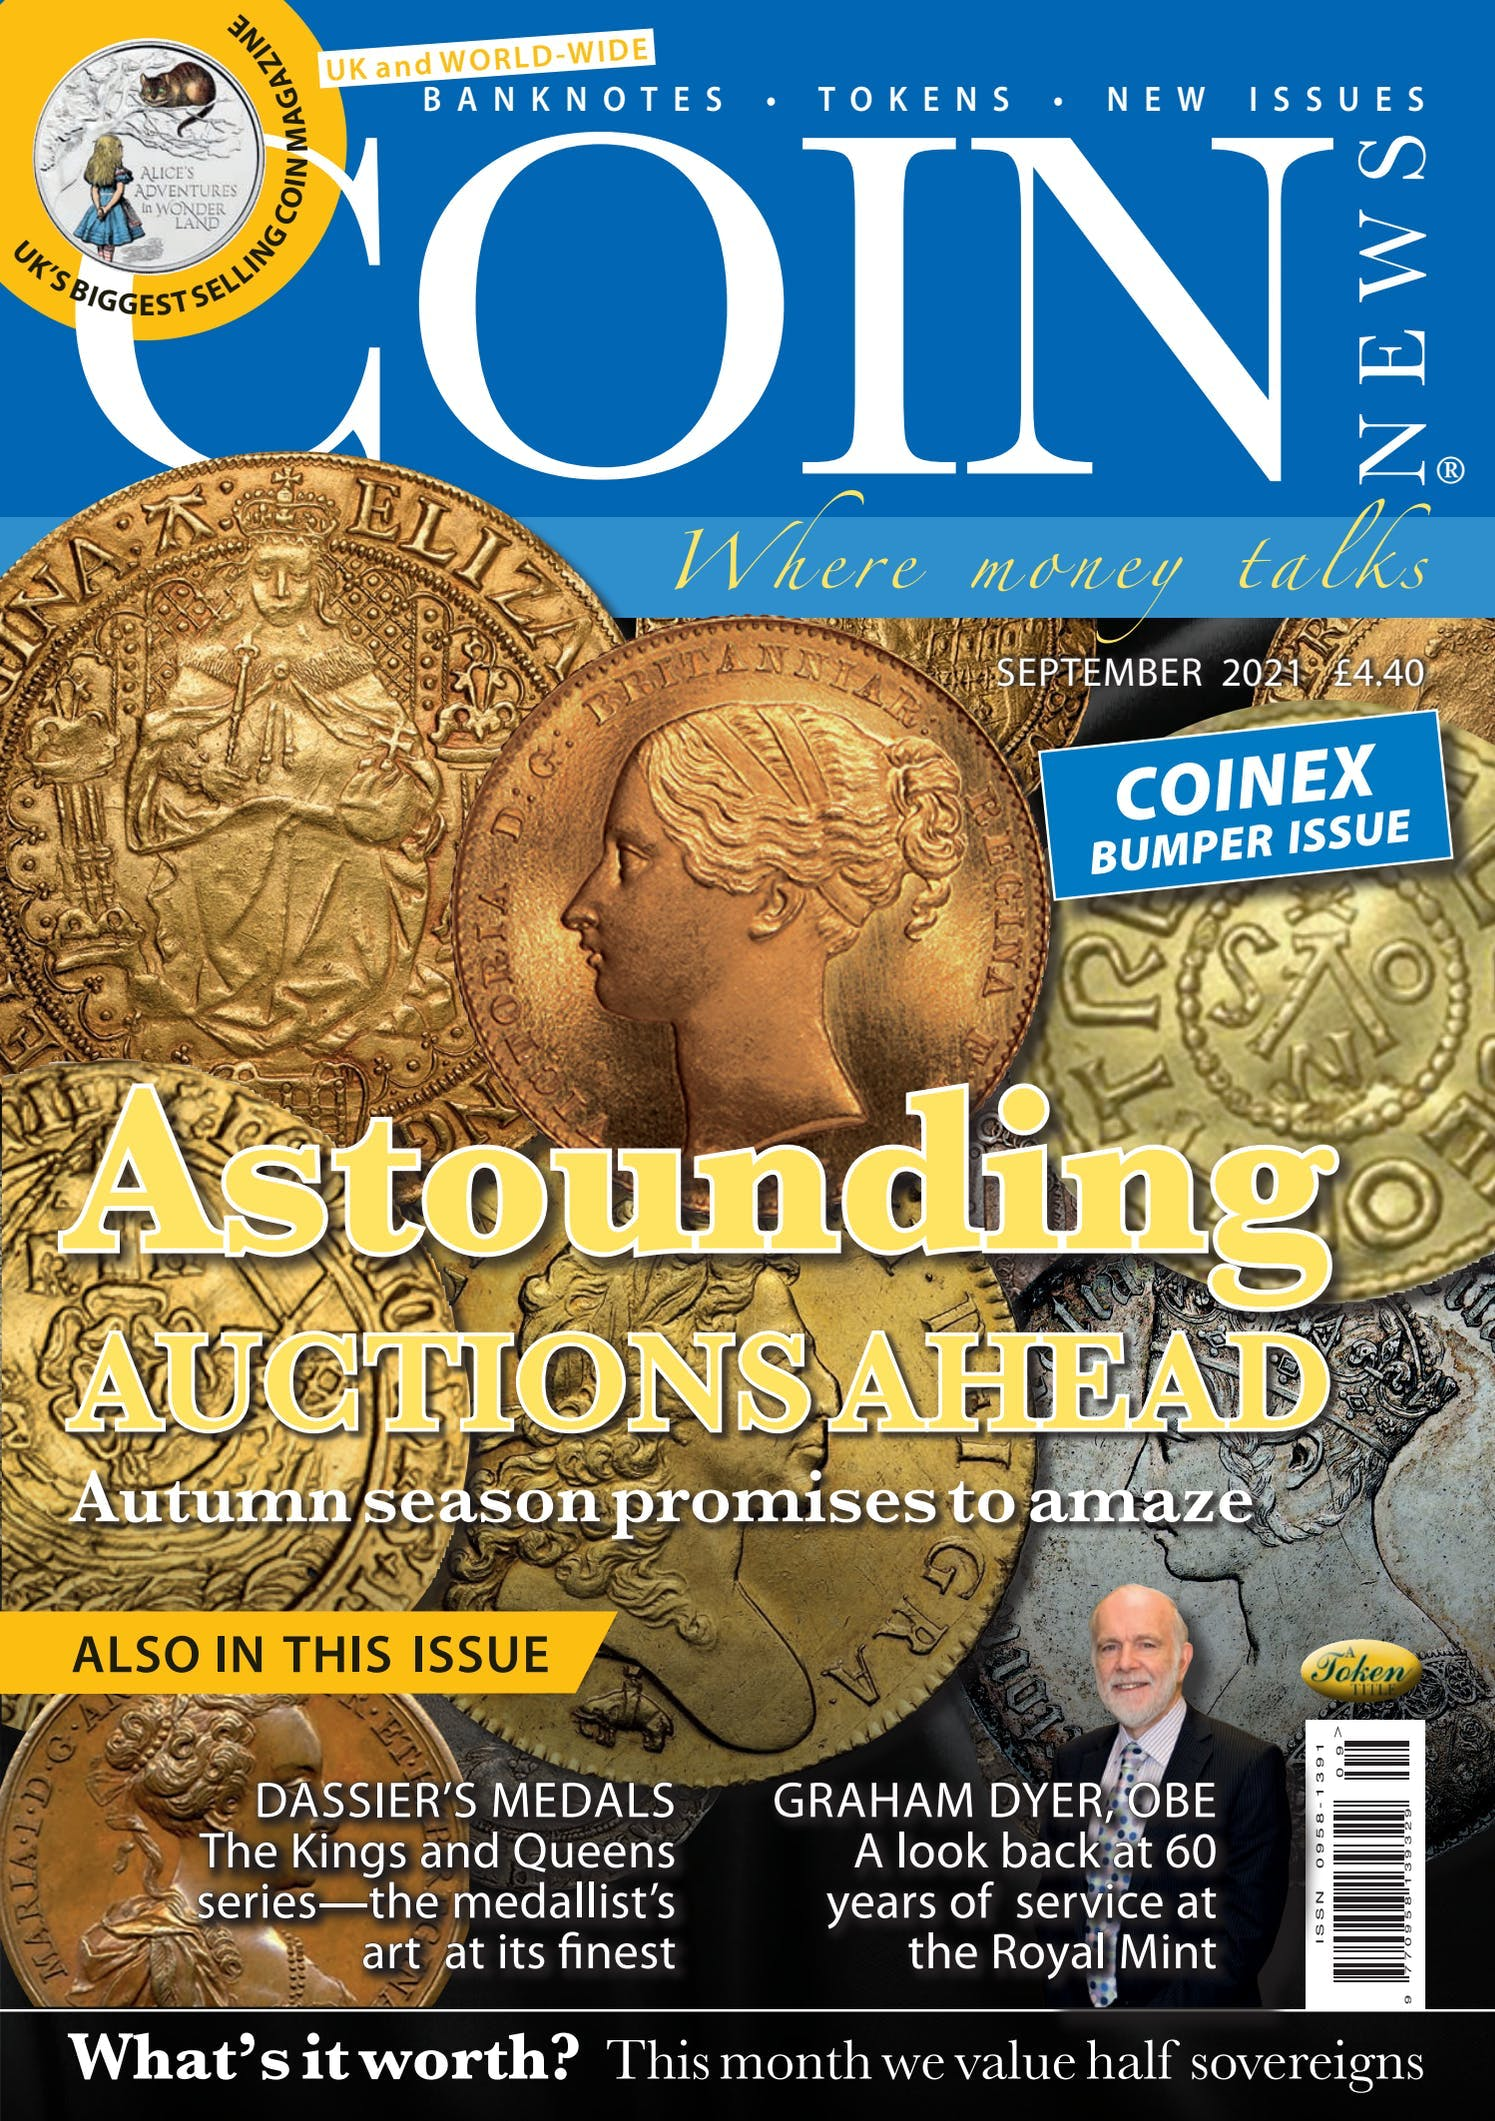 The front cover of Coin News, September 2021 - Volume 58, Number 9